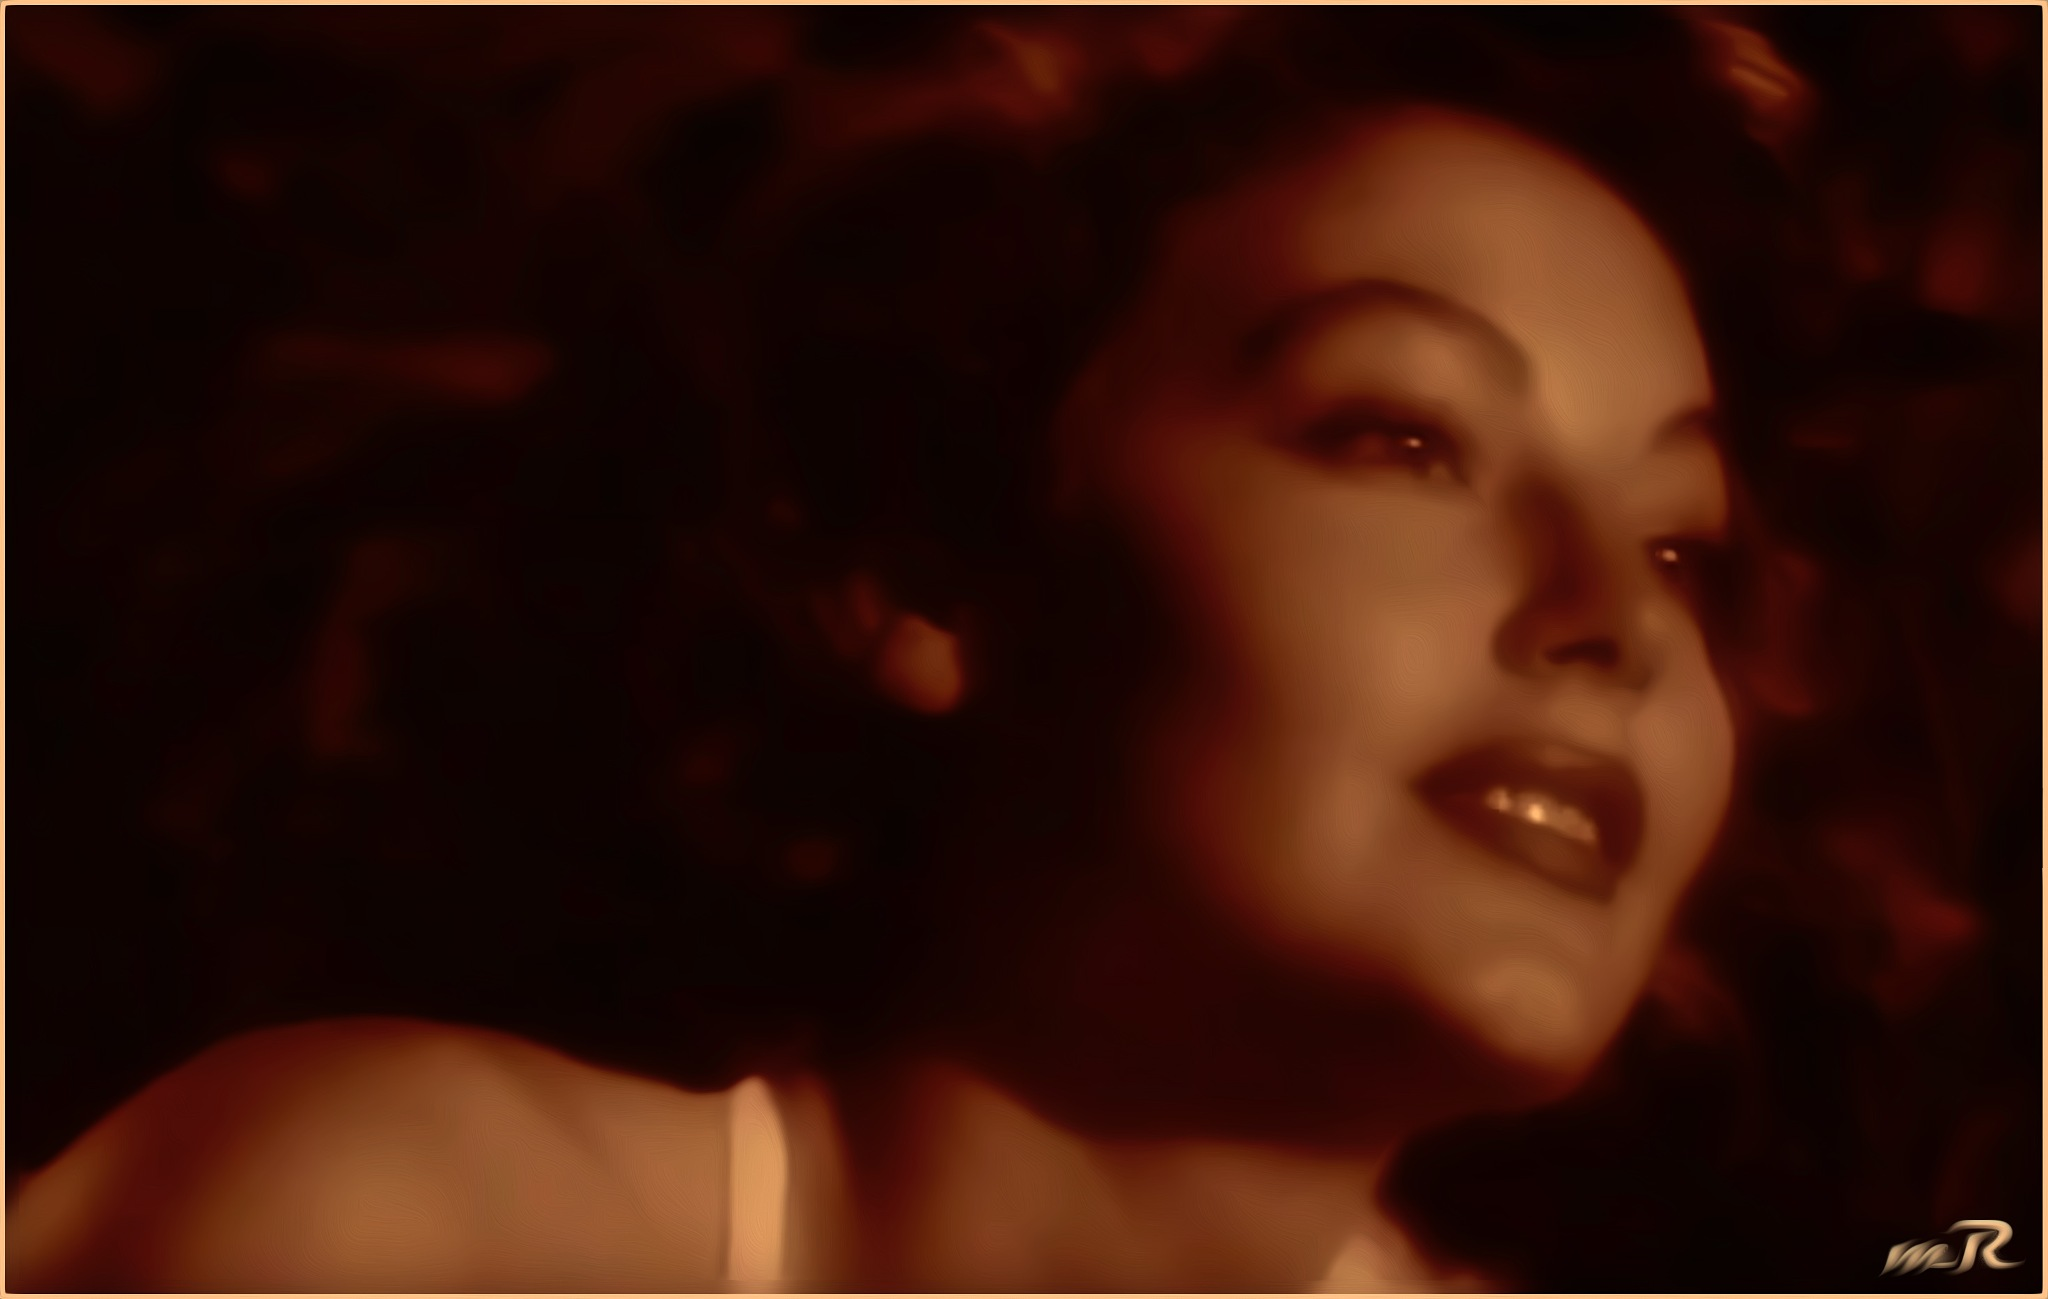 Screenshot from the Movieclip included with  the first Picture of Ava Gardner by Mikael Rennerhorn